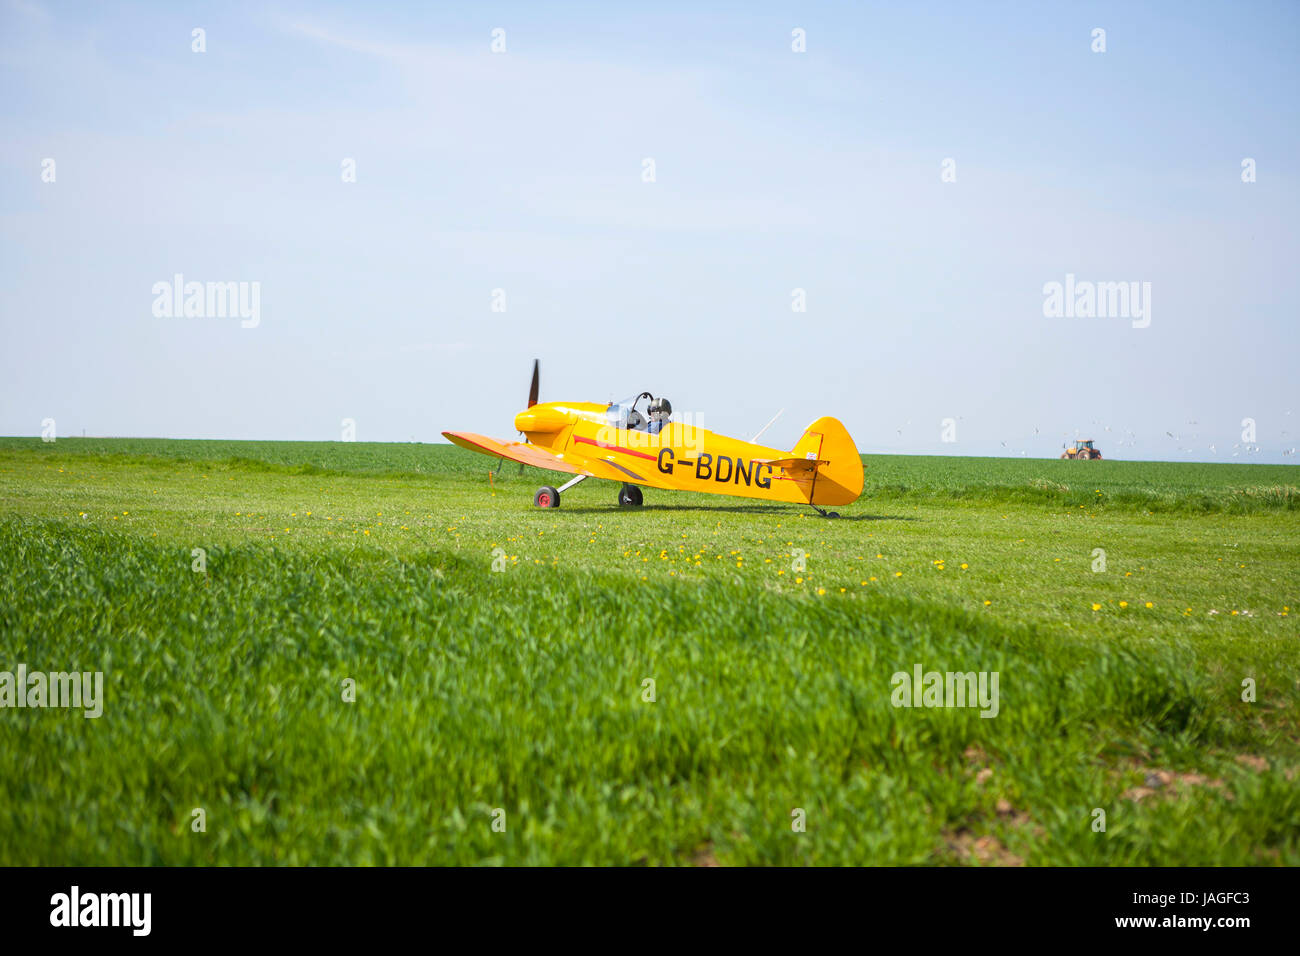 very small yellow aircraft taxiing along rural field ready to take off for flight Stock Photo